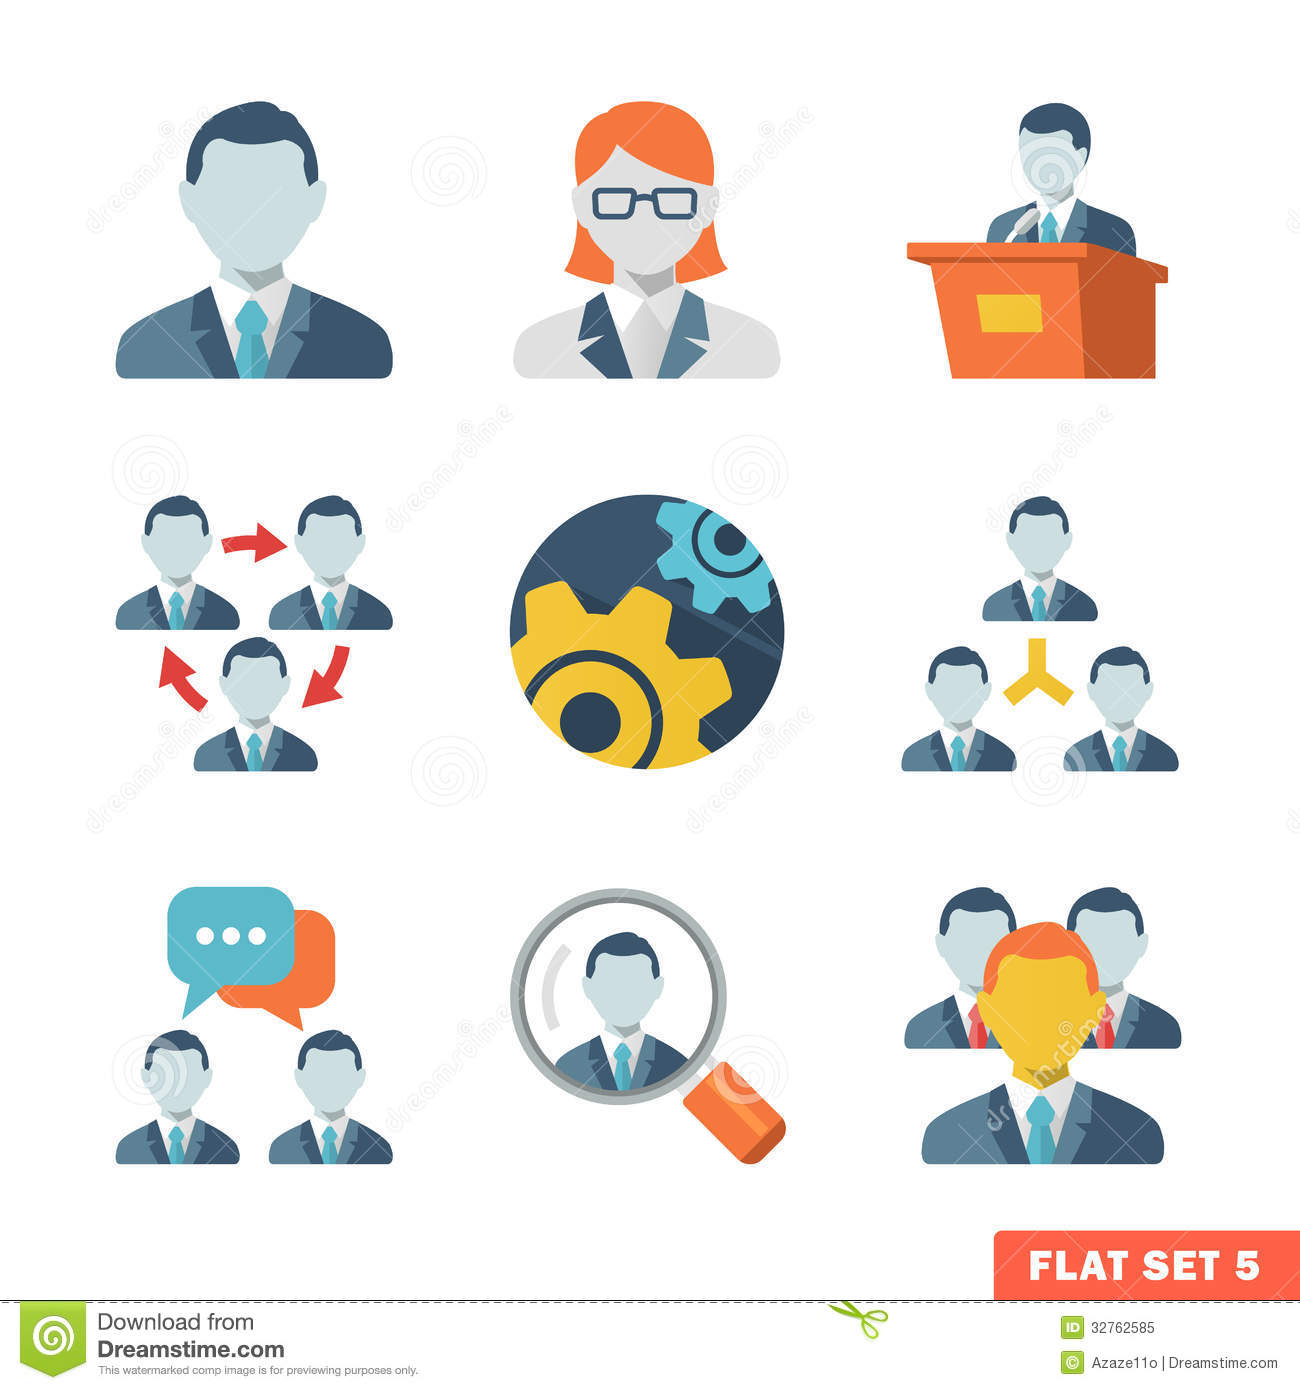 Business People Flat Icons Royalty Free Stock Photo - Image: 32762585